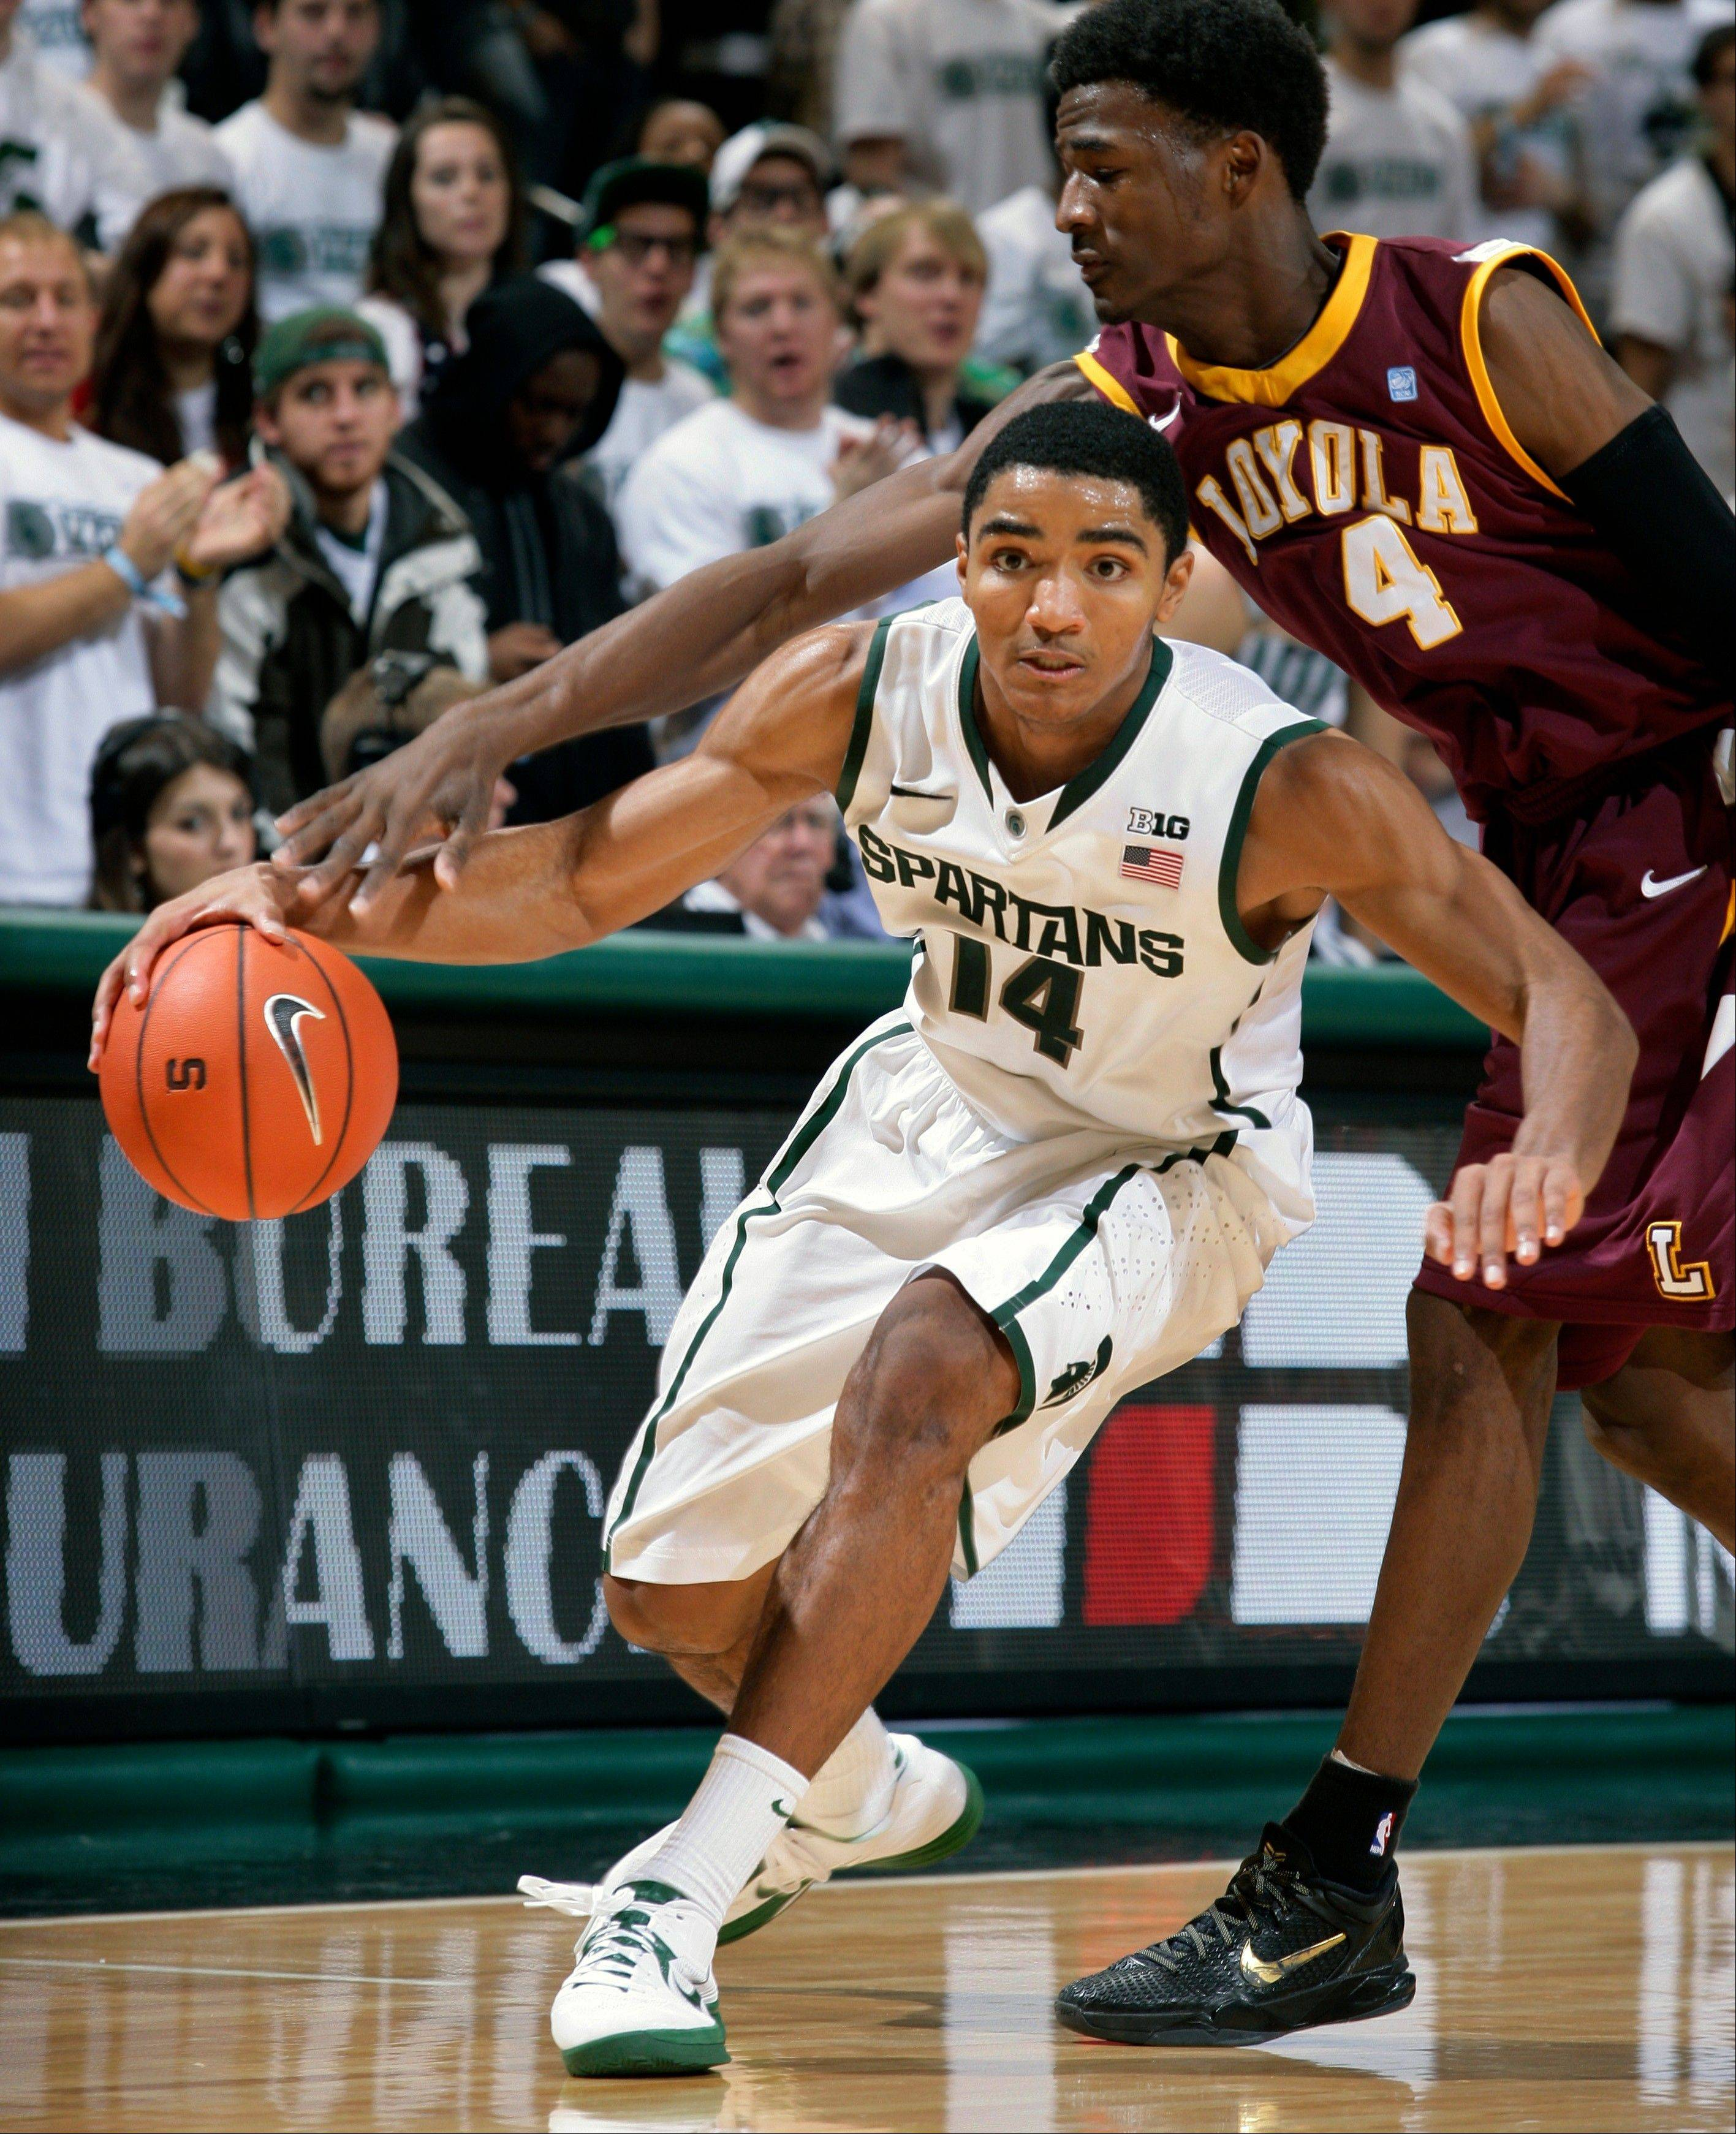 Michigan State's Gary Harris (14) drives against Loyola's Devon Turk during the second half Saturday in East Lansing, Mich. Harris led Michigan State with 20 points in a 73-61 win.